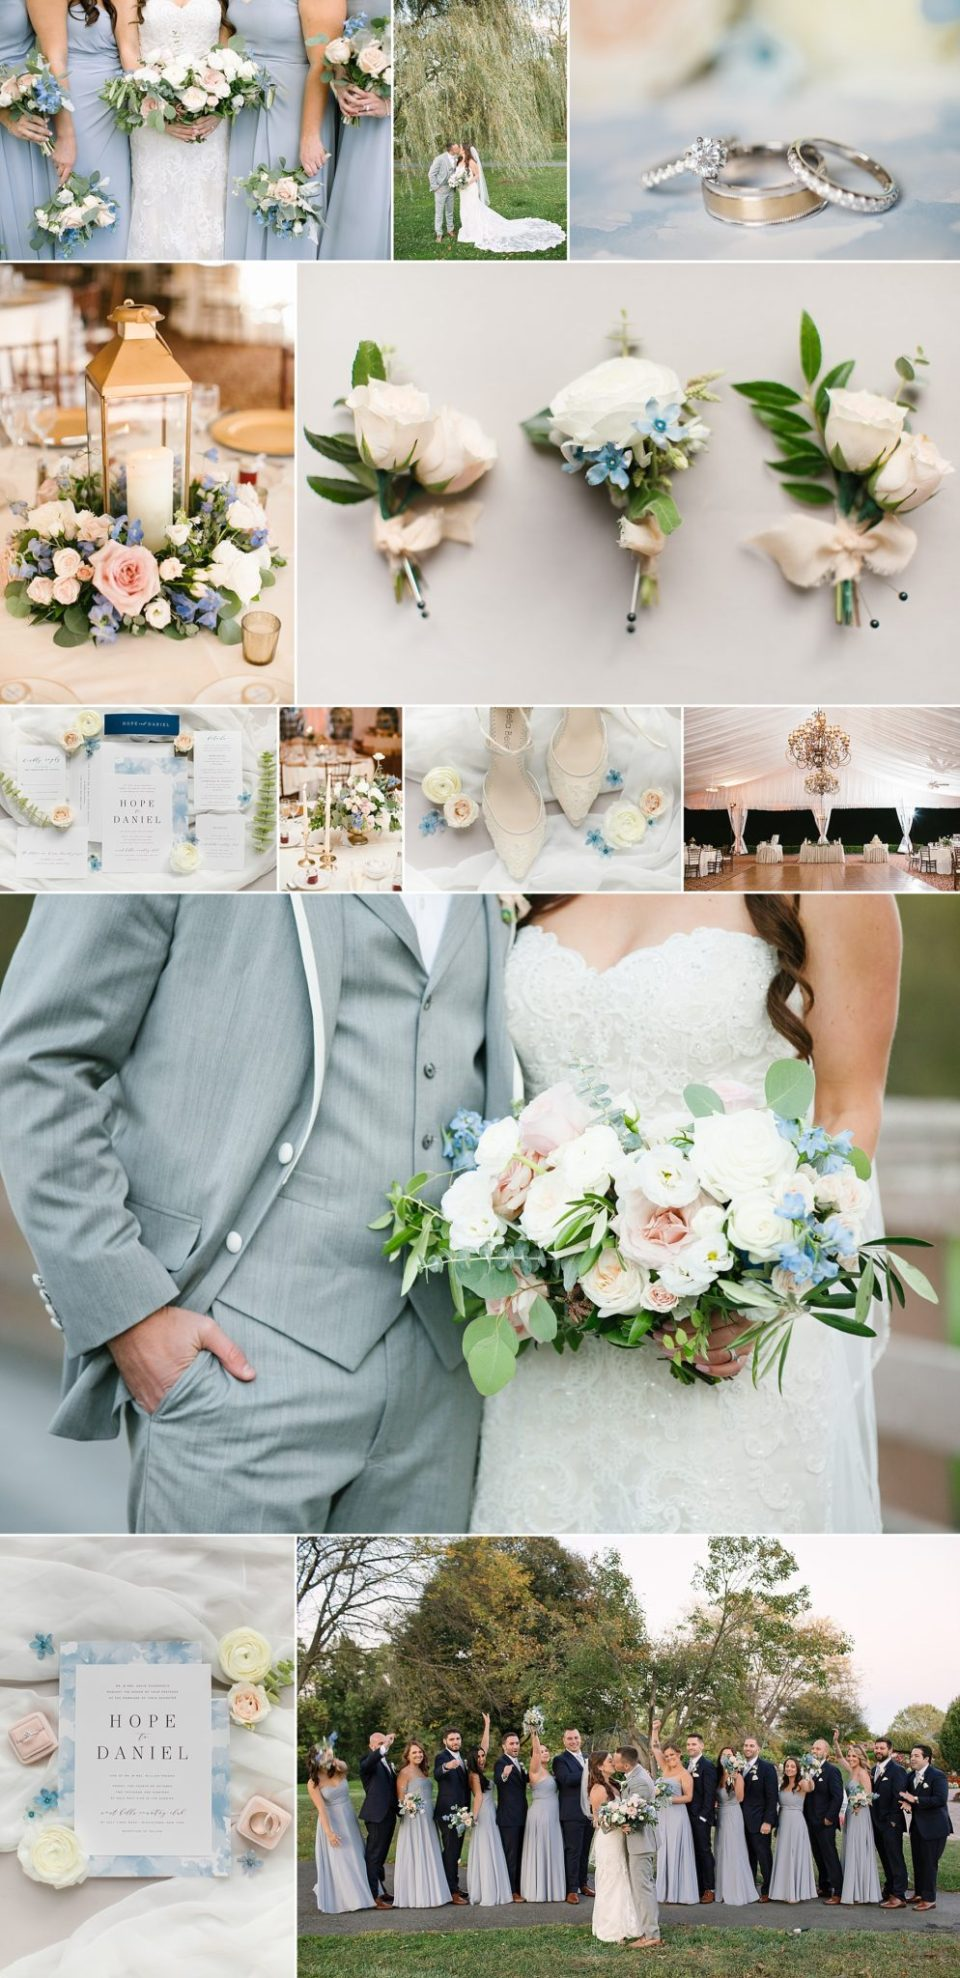 West Hills Country Club wedding photographed by Ashley Mac Photographs